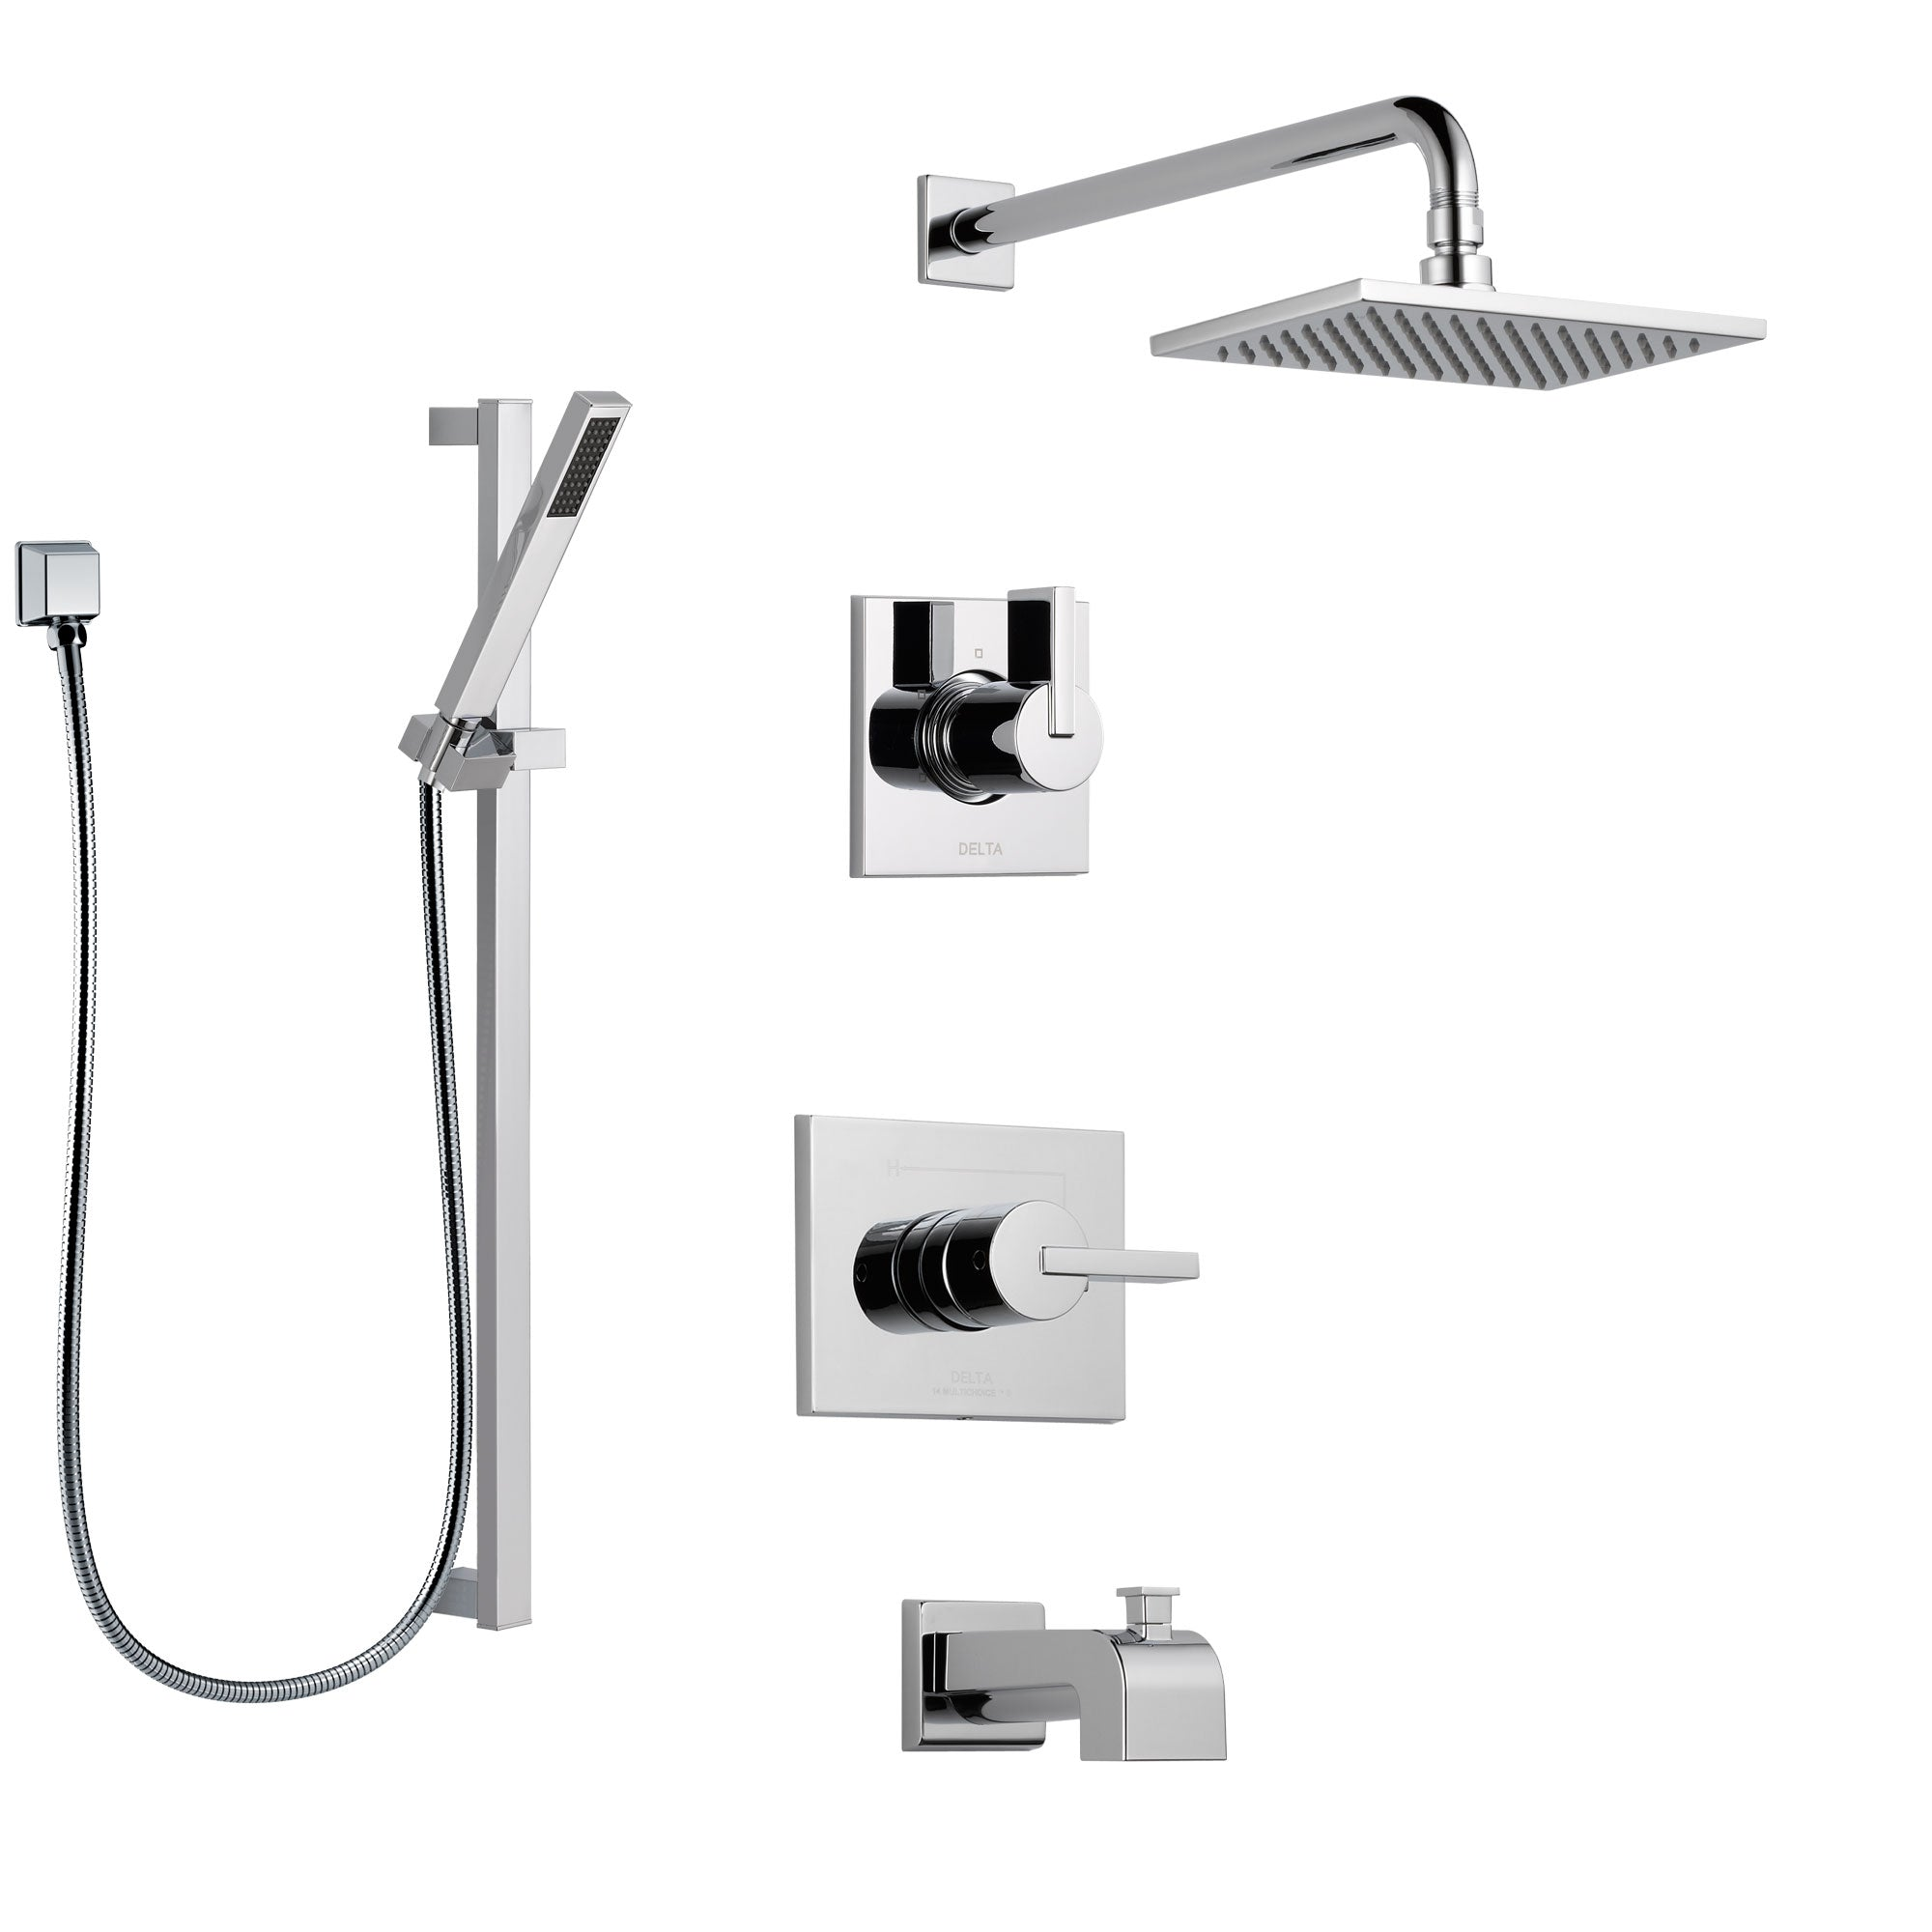 Delta Vero Chrome Finish Tub and Shower System with Control Handle, 3-Setting Diverter, Showerhead, and Hand Shower with Slidebar SS1445325